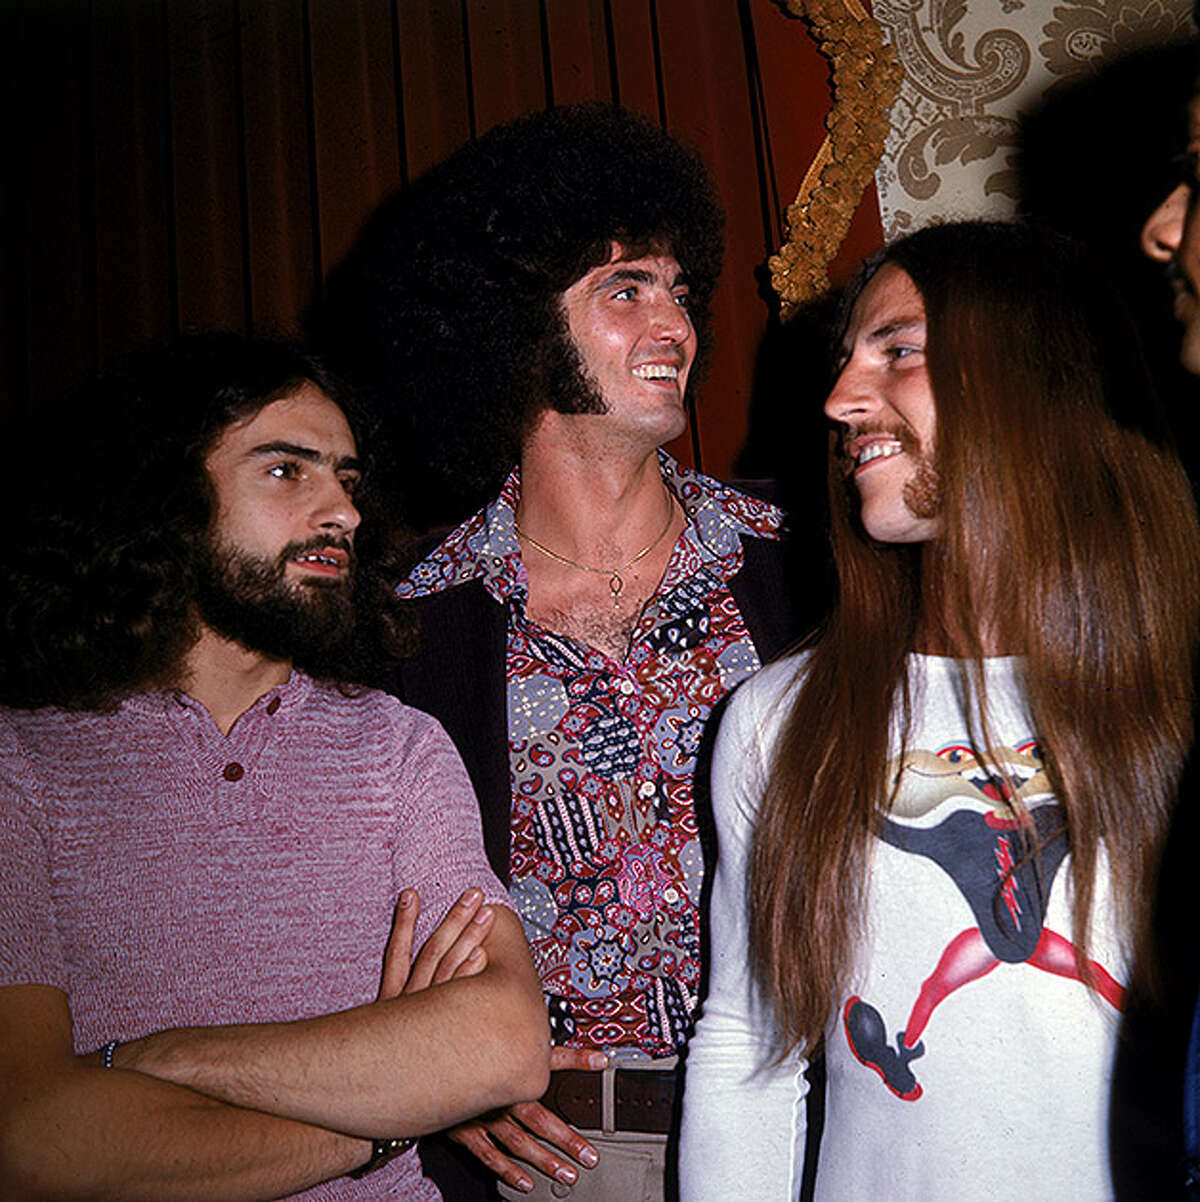 Let's take a look back at some of the musicians who made rock, pop and folk a powerful force in the 1970s. We've tried to keep the captions as they appeared originally, though some minor editing was necessary. Members of the American rock band Grand Funk Railroad, (Left to right): Mel Schacher, Don Brewer, and Mark Farner, 1970s